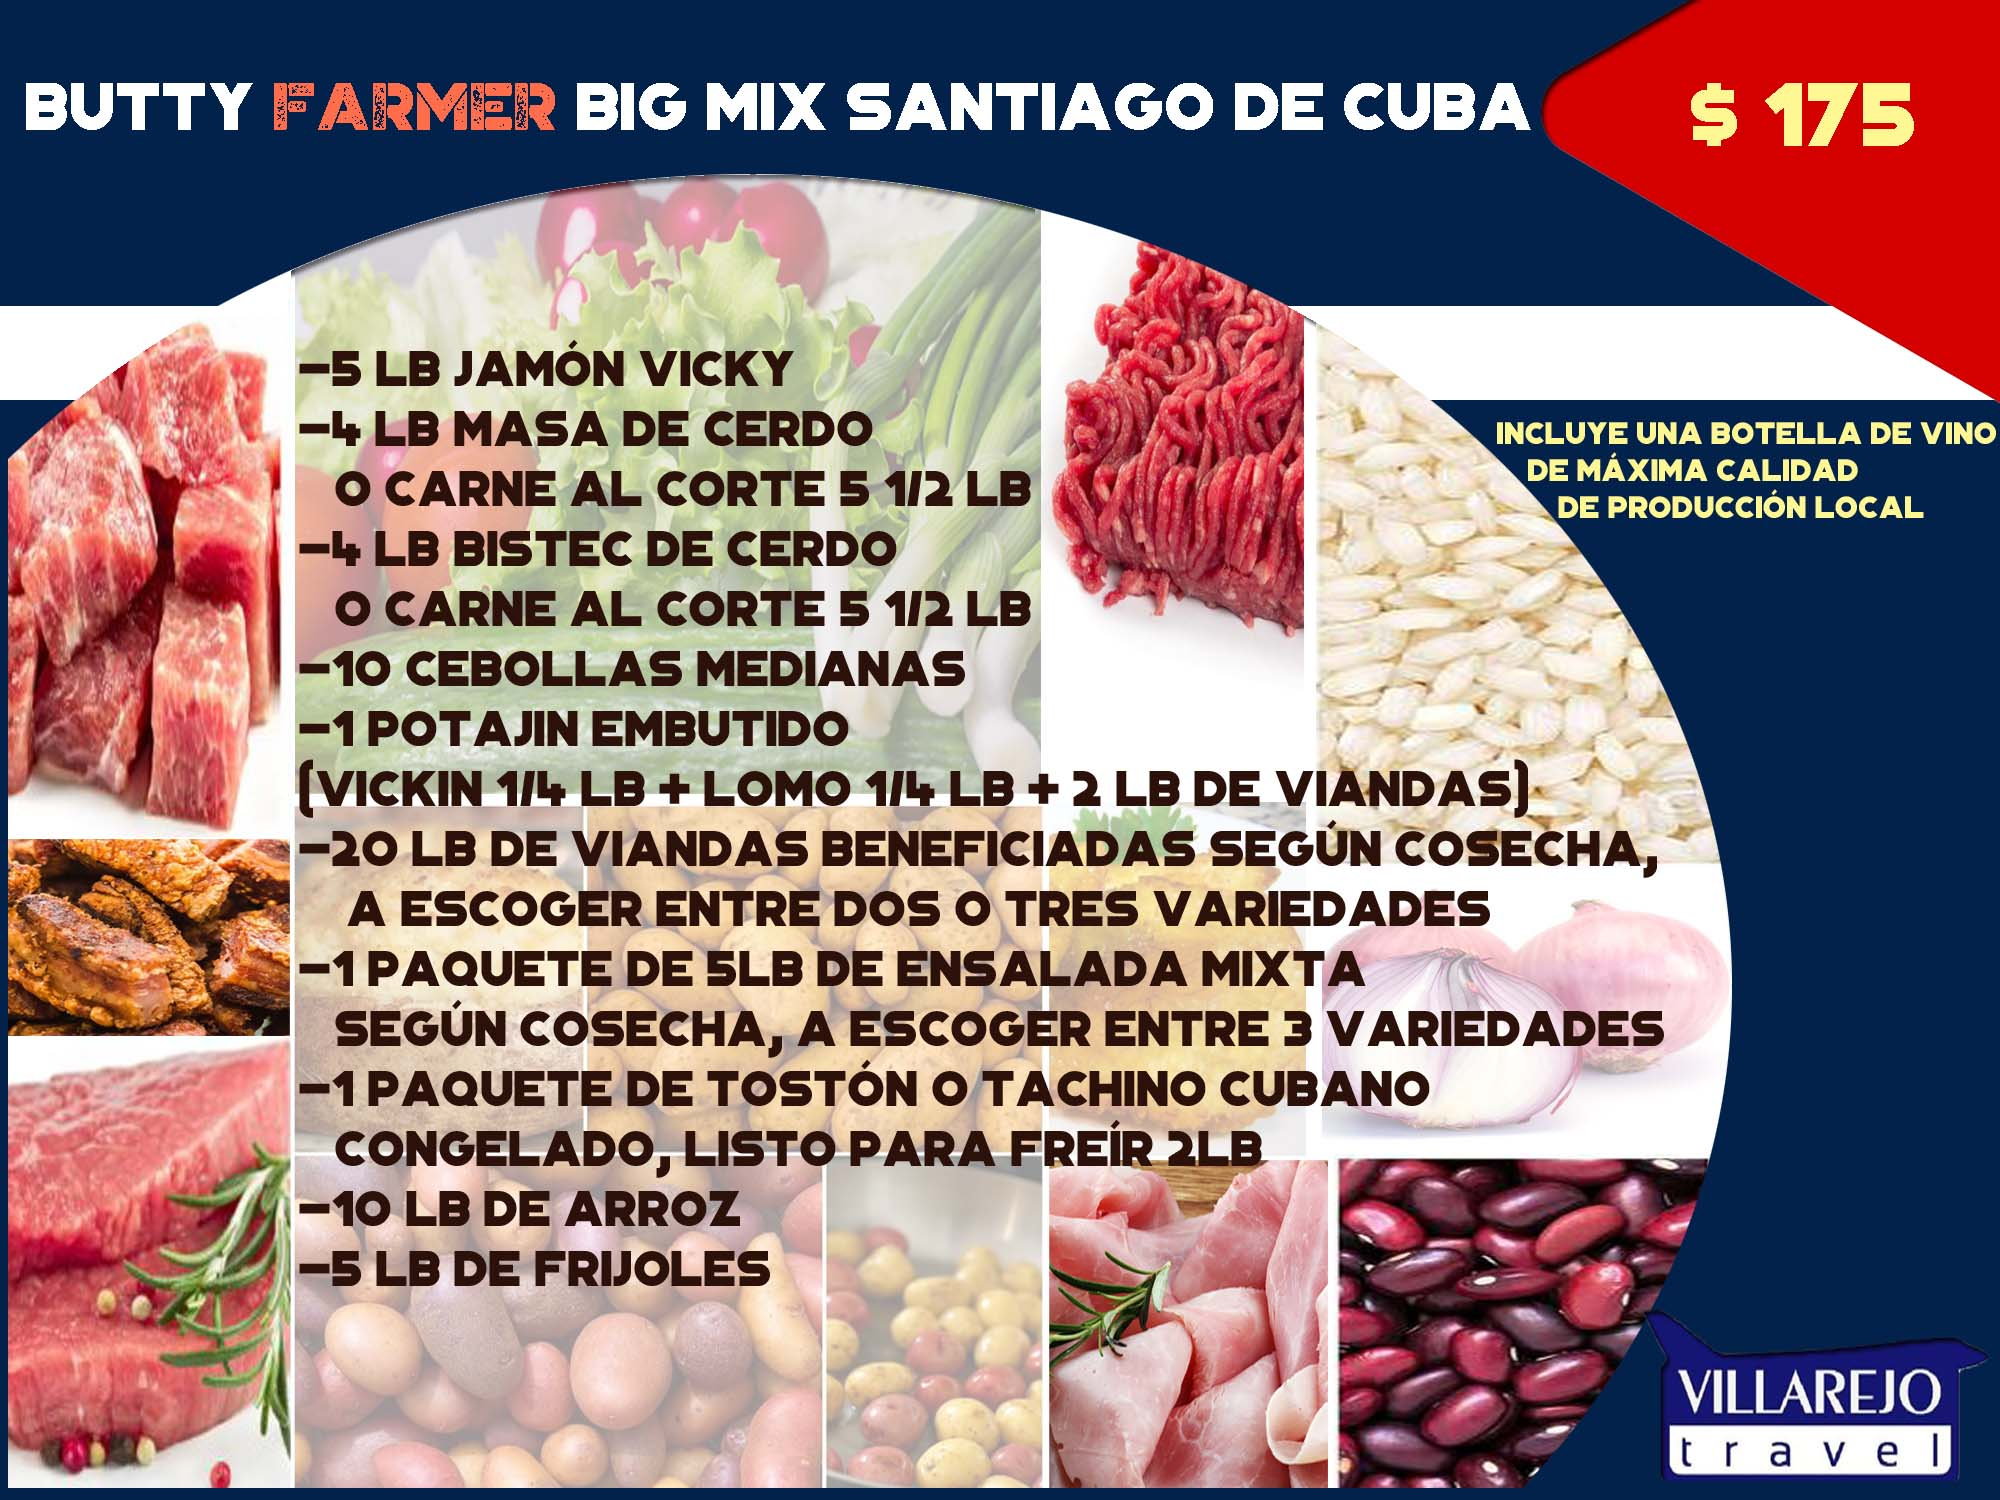 Butty Farmer Big Mix Santiago de Cuba #1